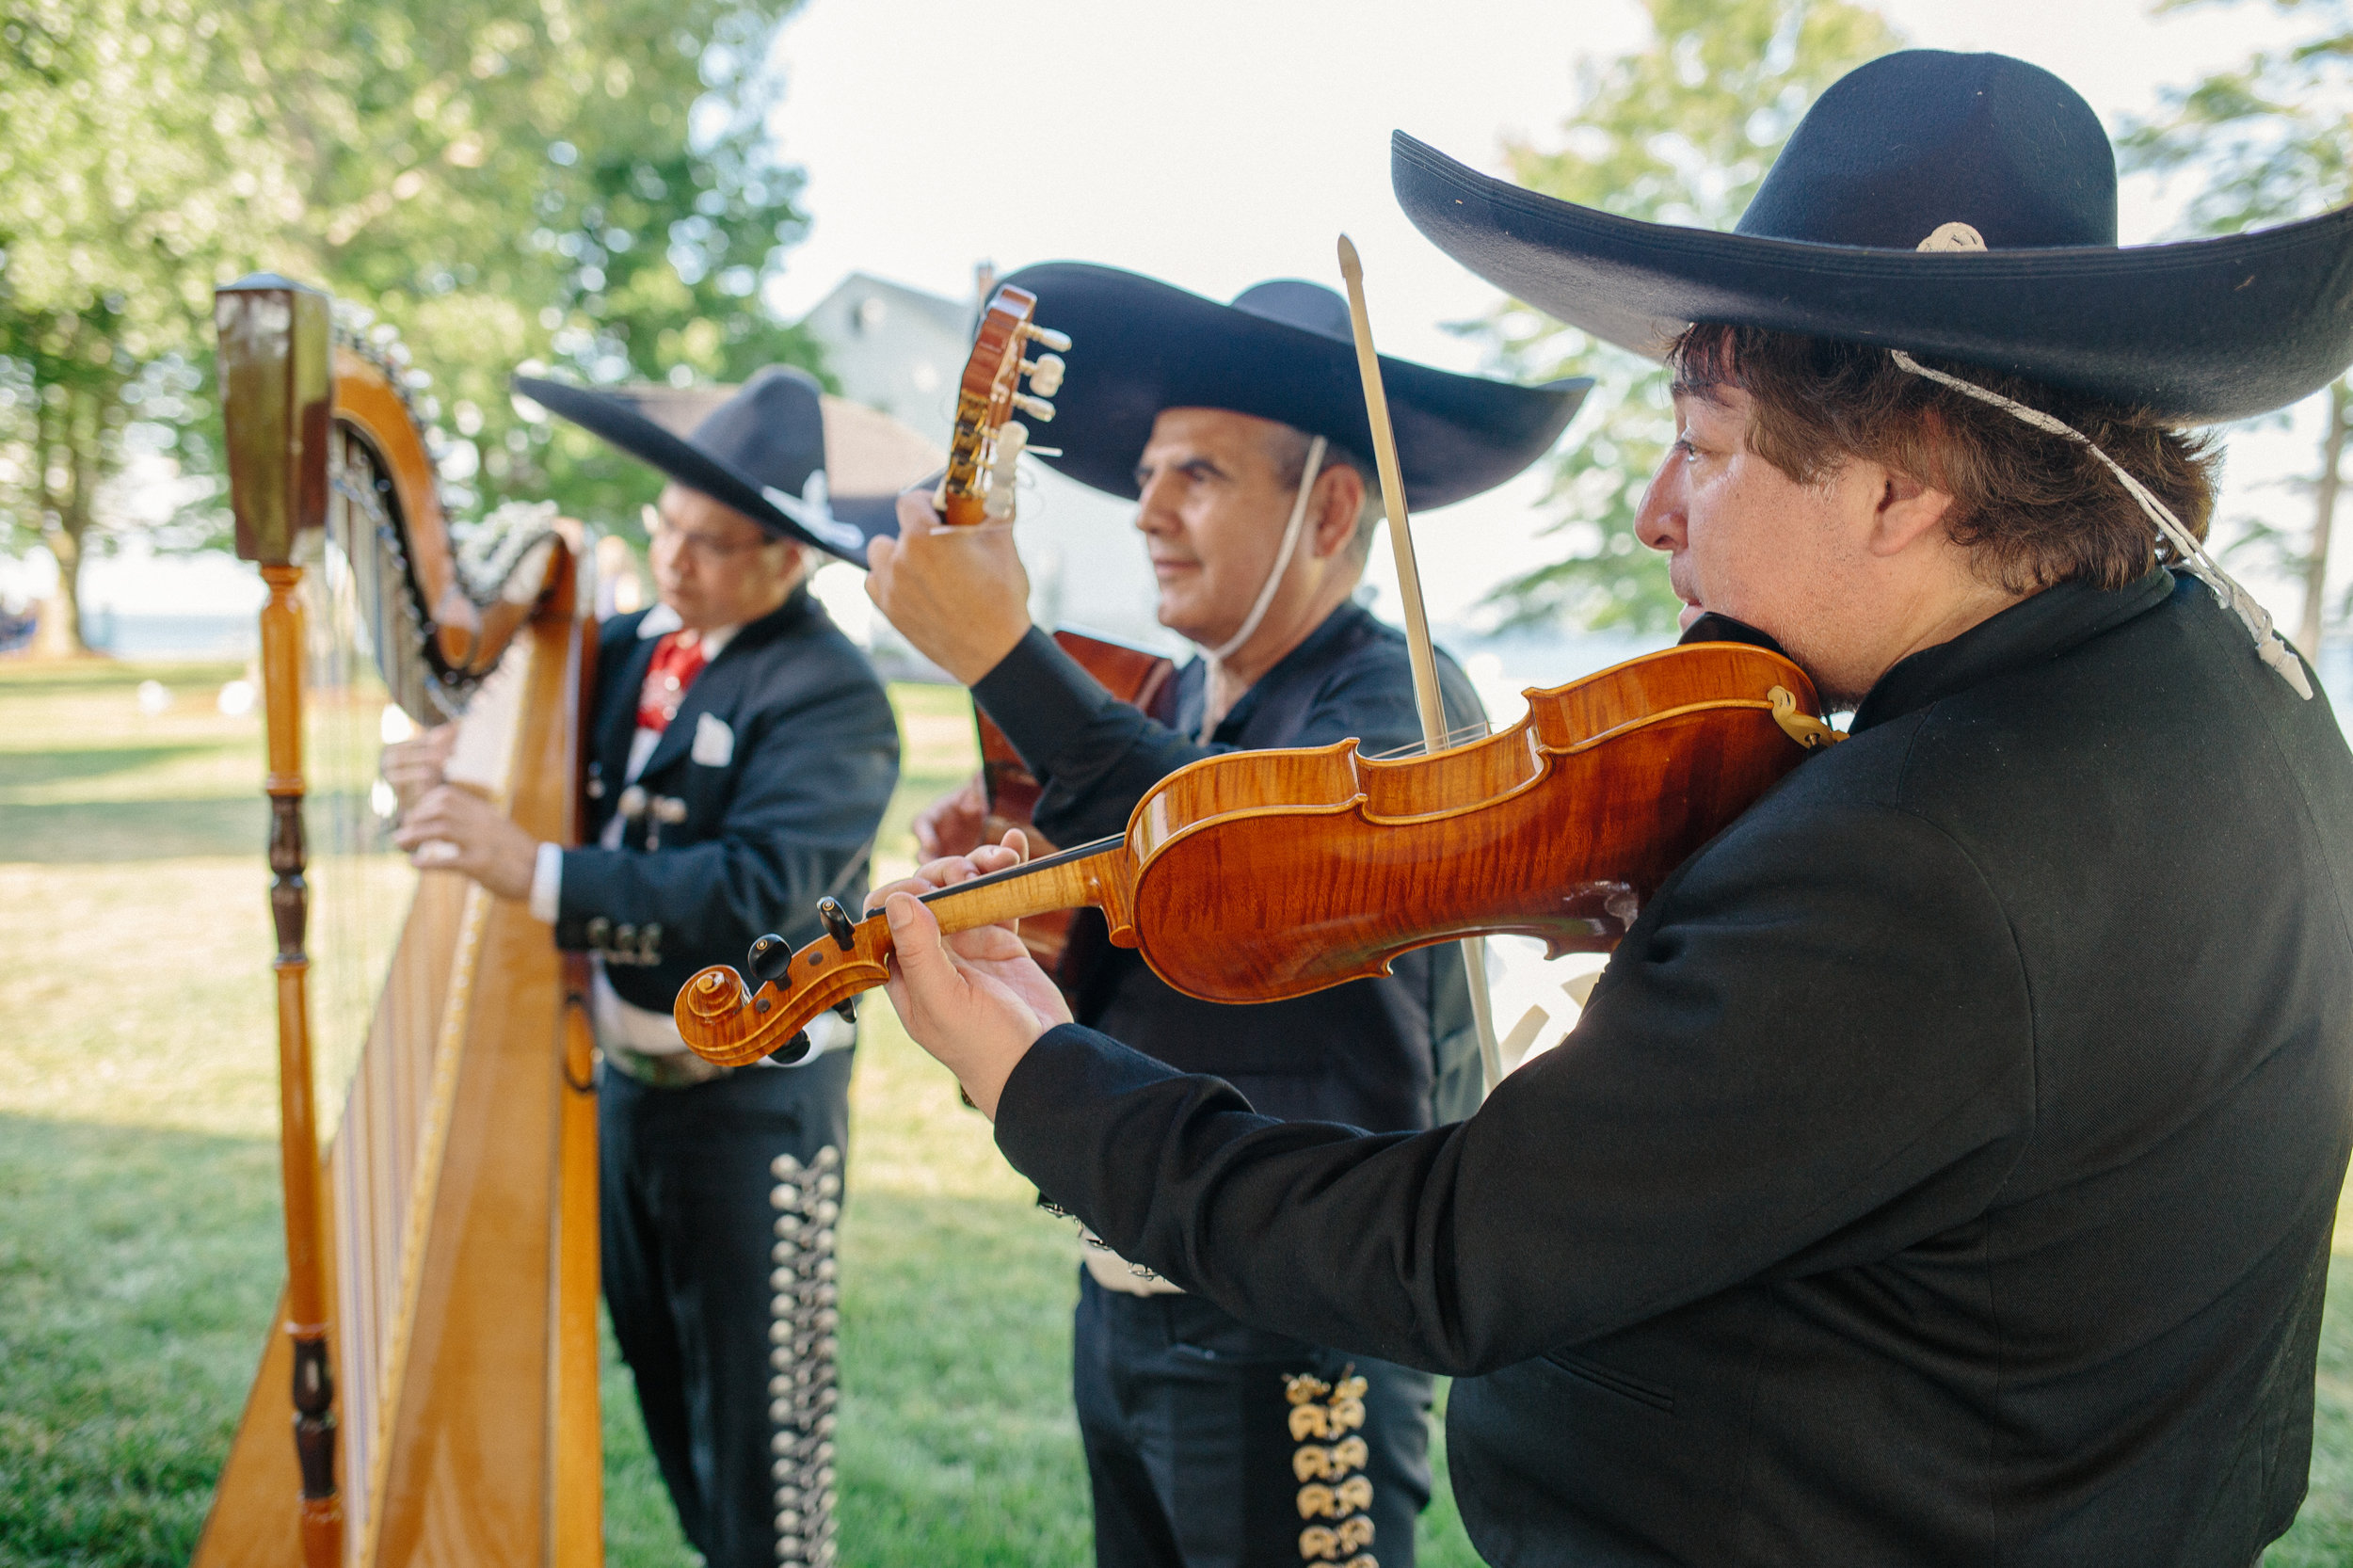 east-coast-mariachi-band-for-hire-maryland